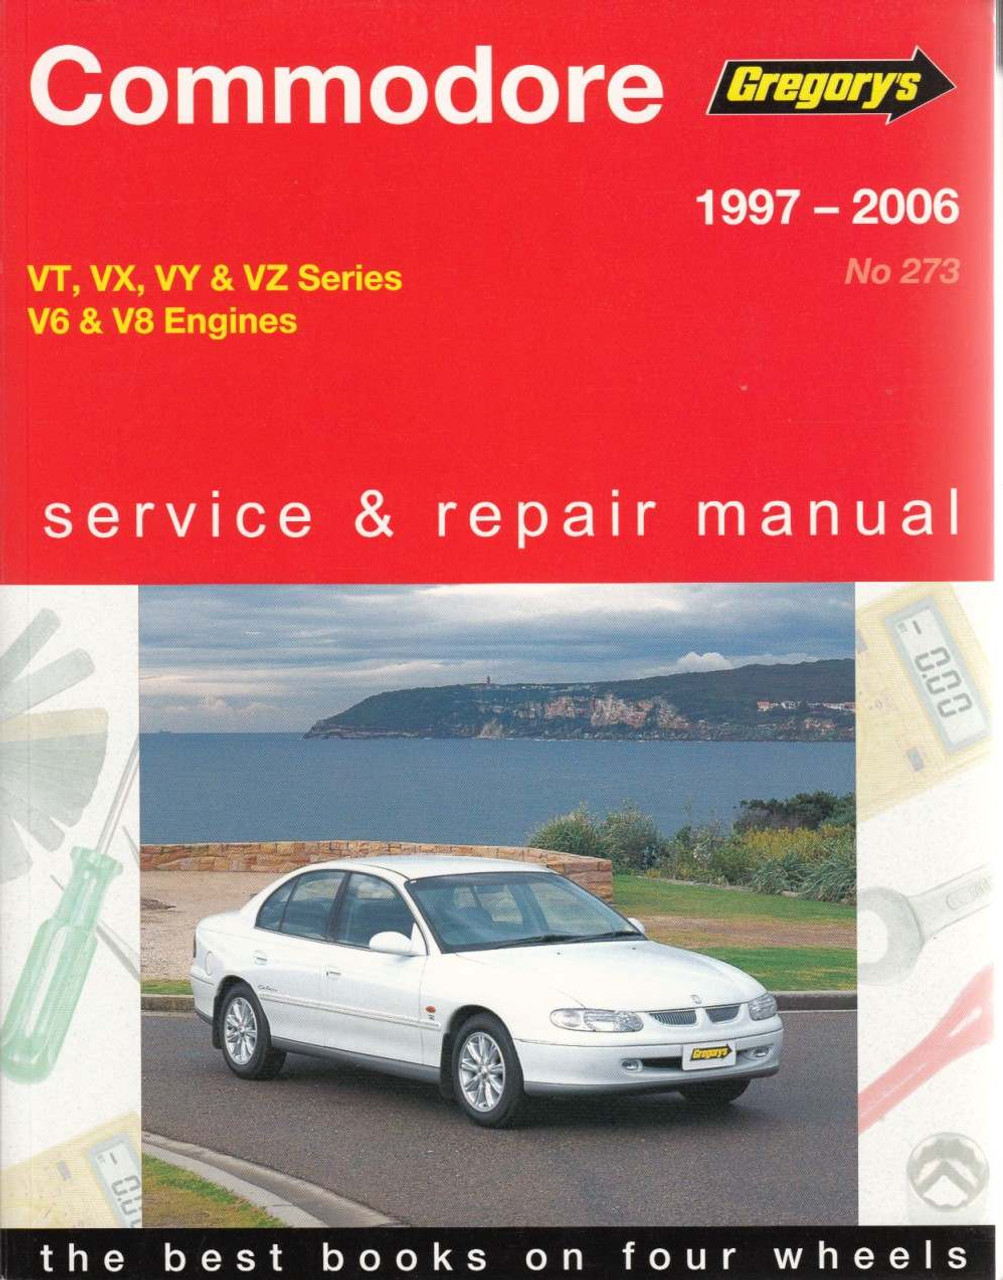 holden commodore vt vx vy vz series v6 amp v8 1997 2006 rh automotobookshop com au ve commodore service manual free download ve commodore service manual free download